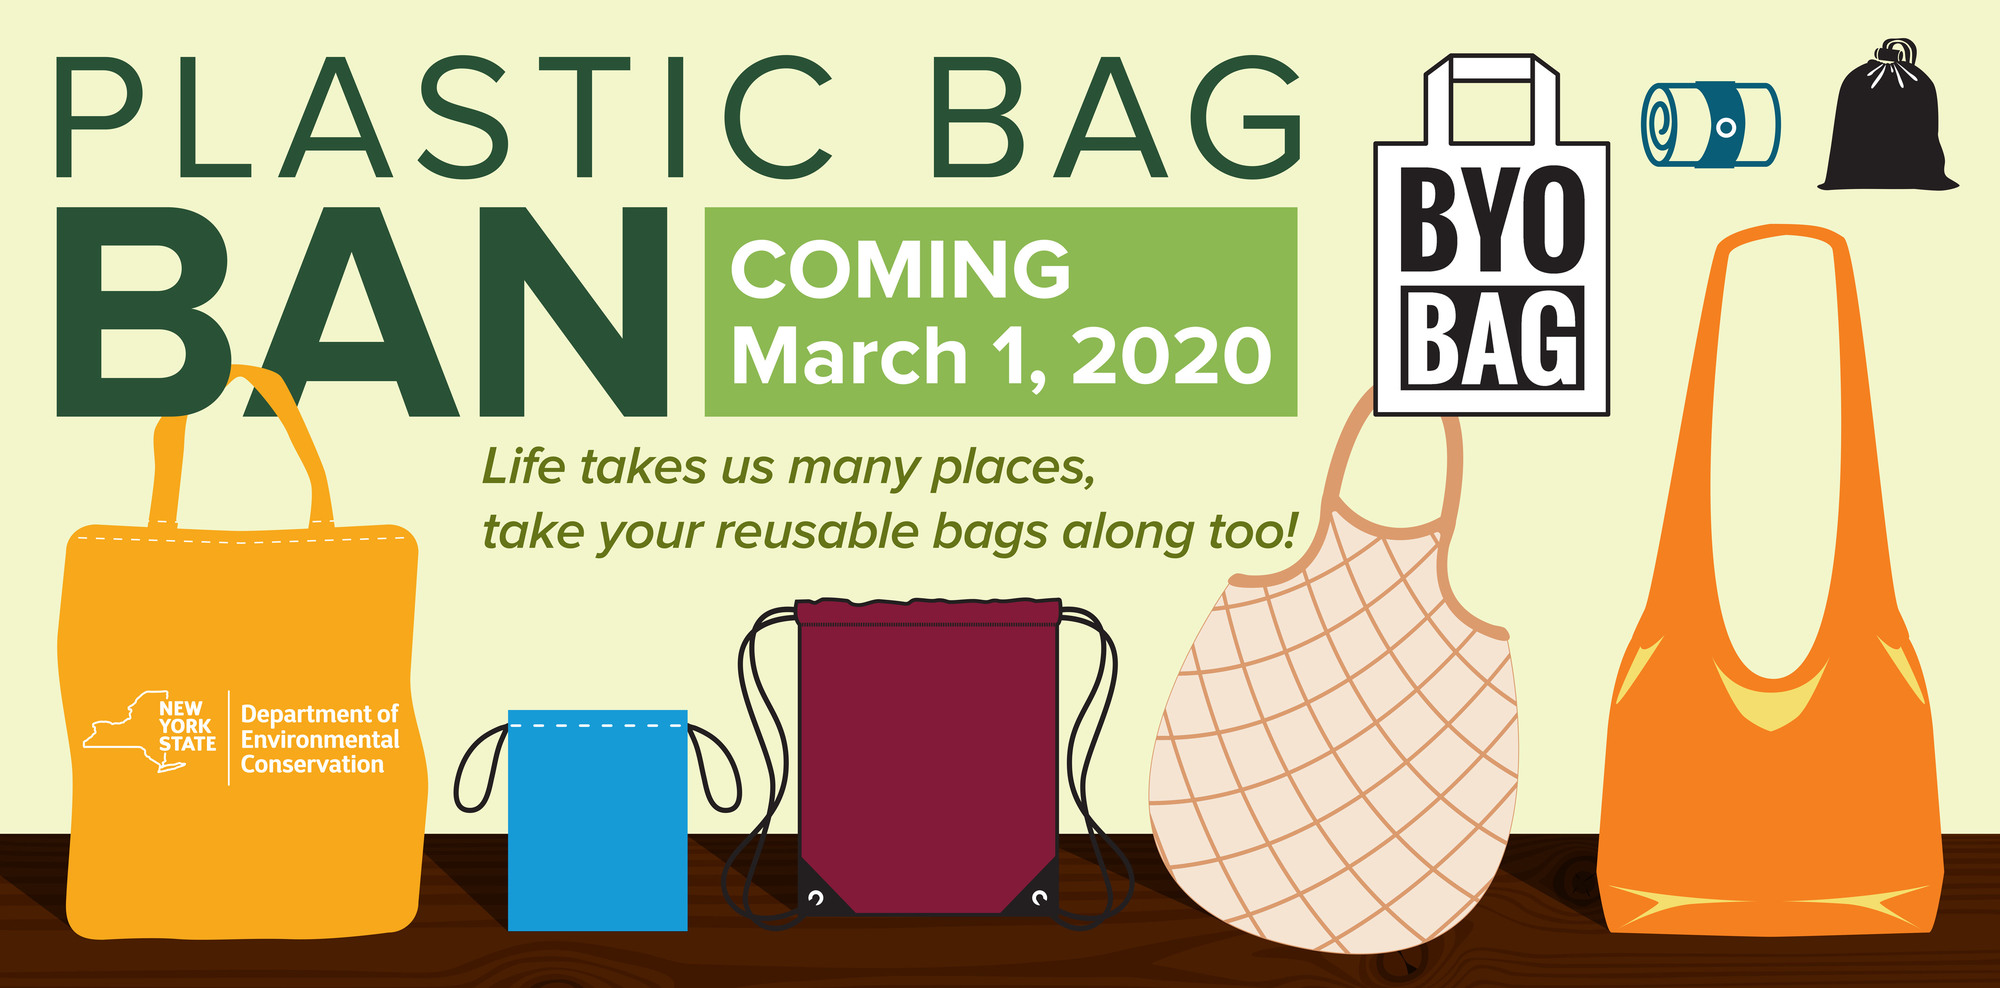 Life takes us many places, take your reusable bags along too!